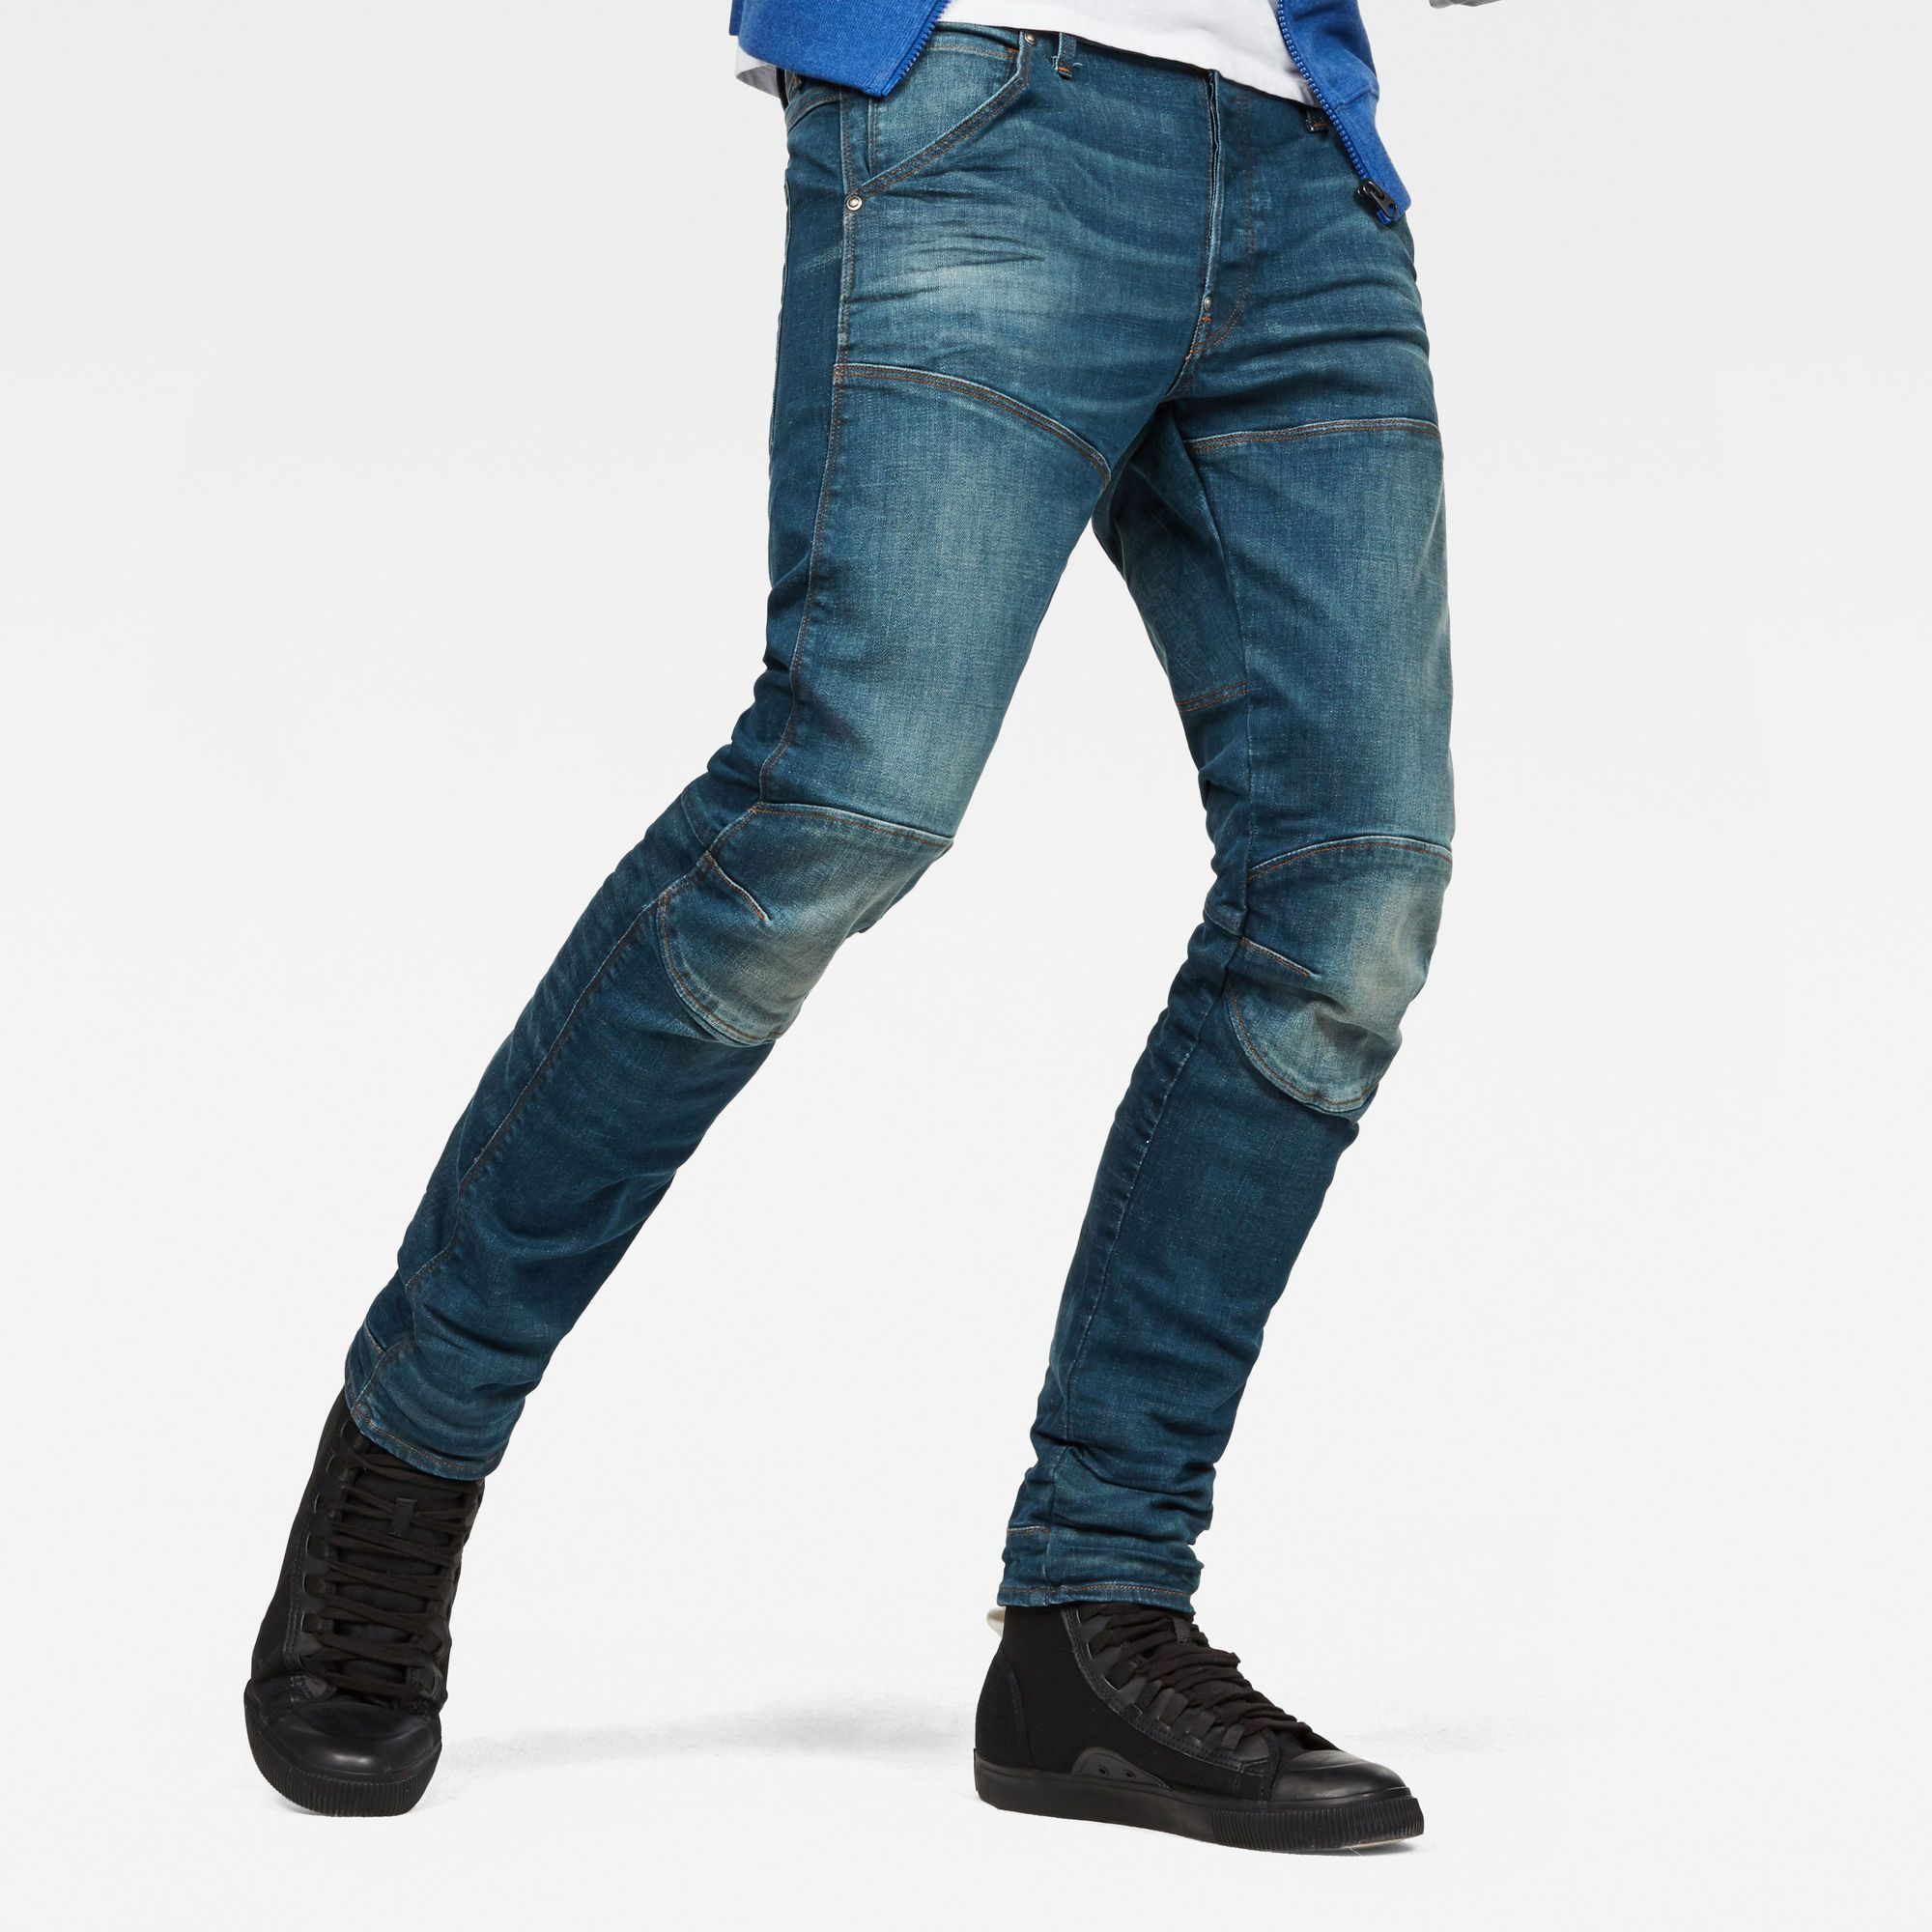 5620 3D Slim Jeans | Ripped jeans men, Slim jeans, Raw jeans